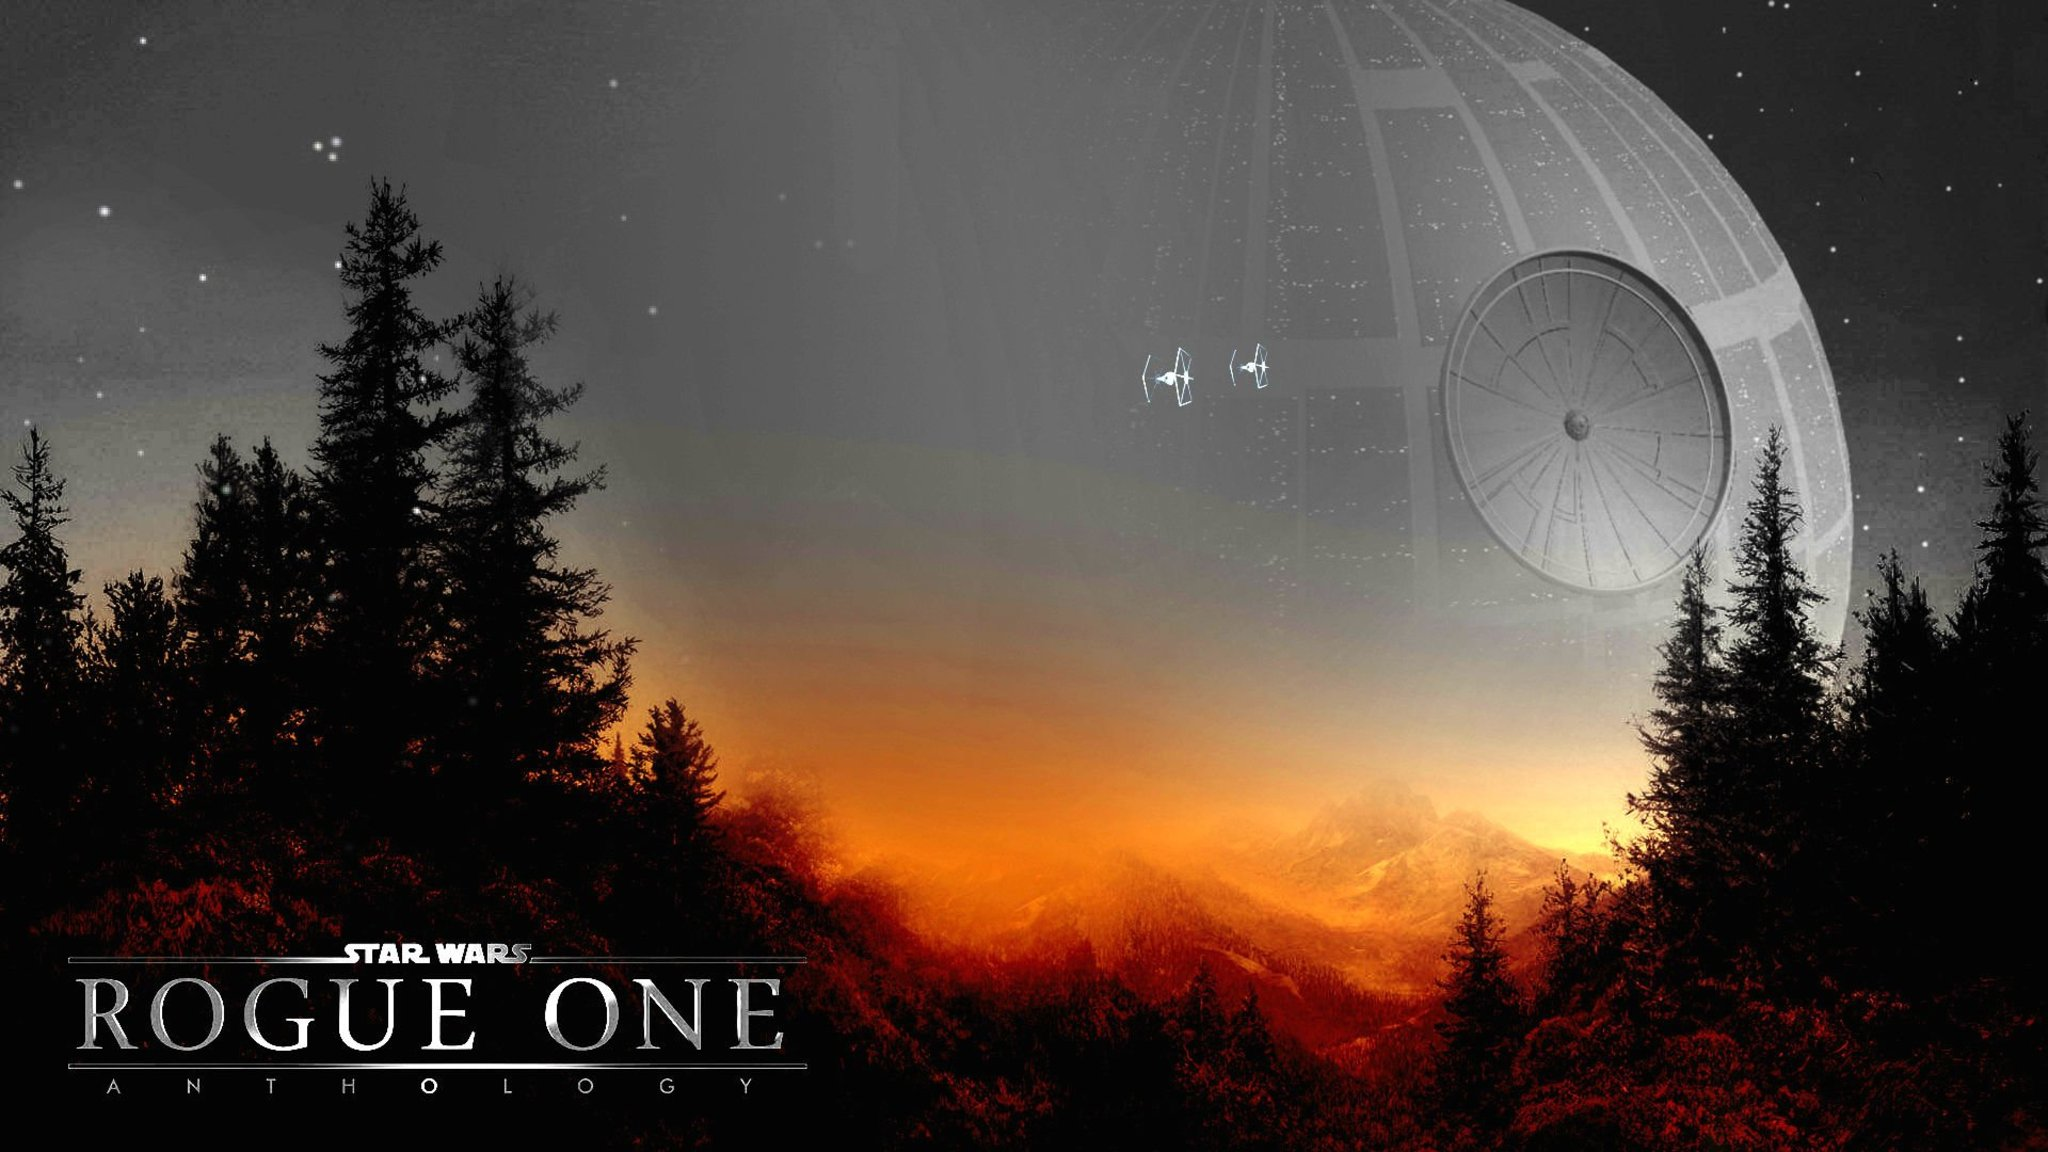 Free Download Rogue One Subtheme Of Star Wars Wallpaper